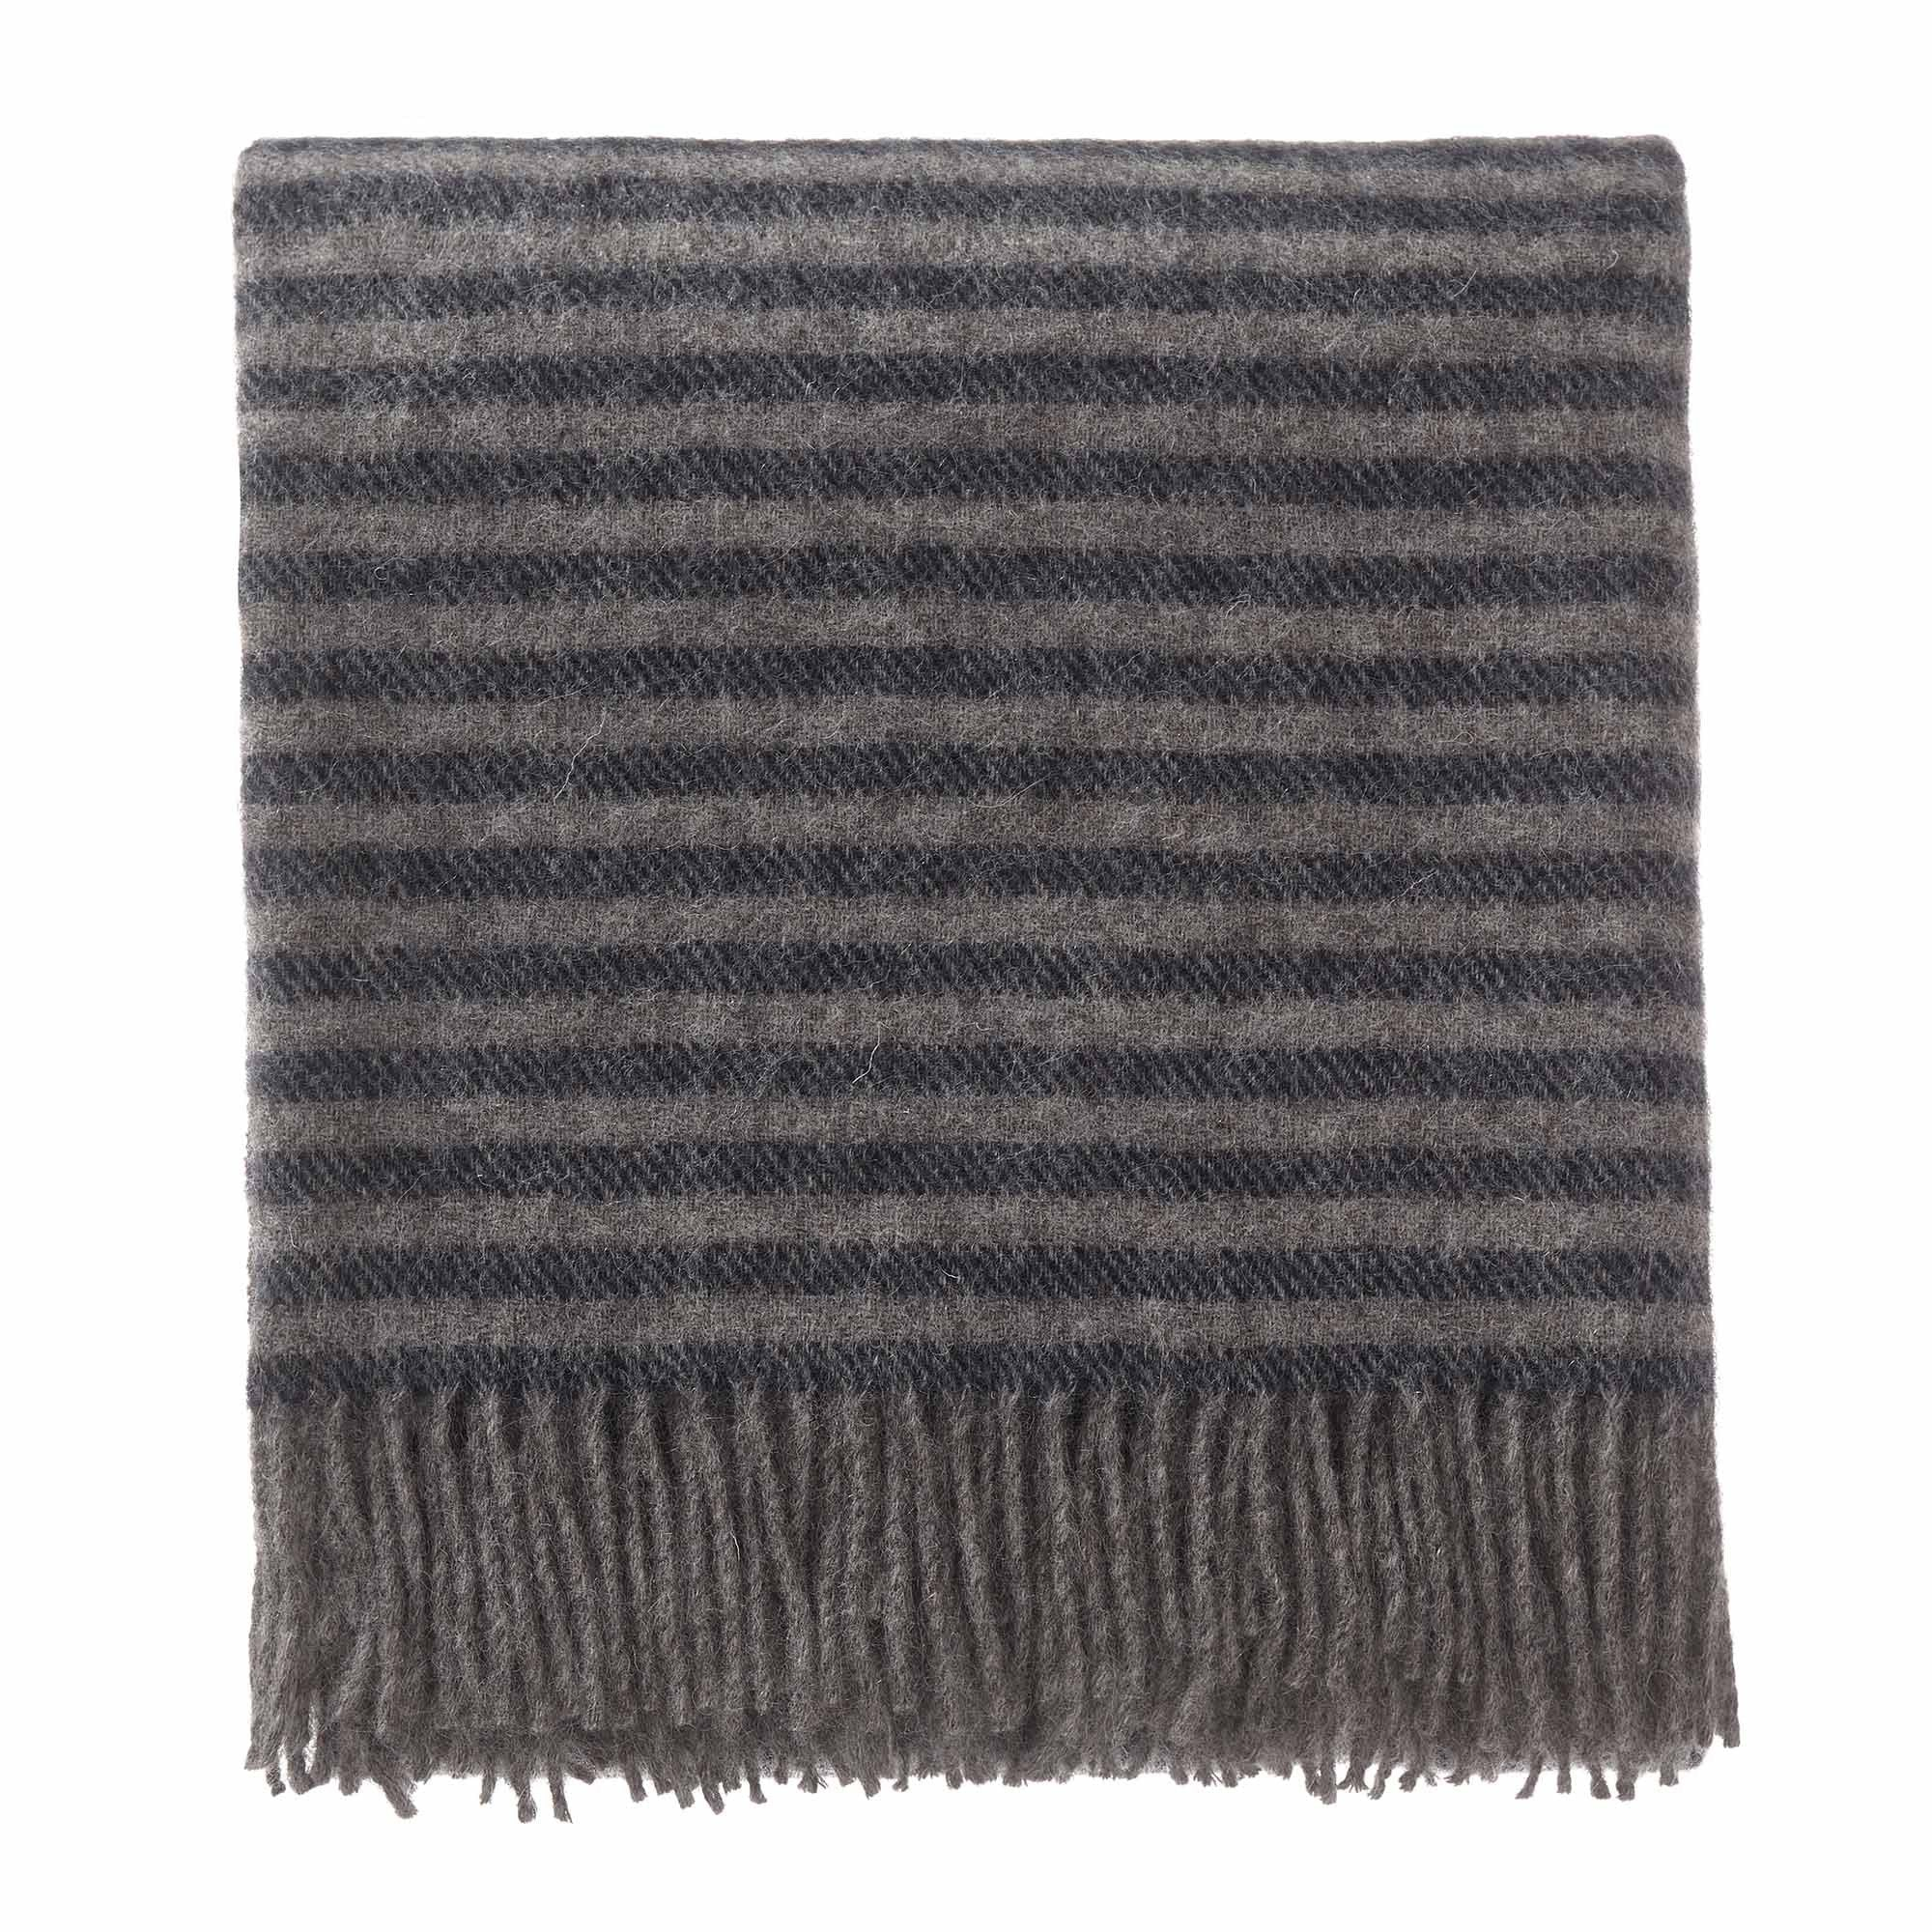 Visby blanket, dark blue & grey melange, 100% new wool